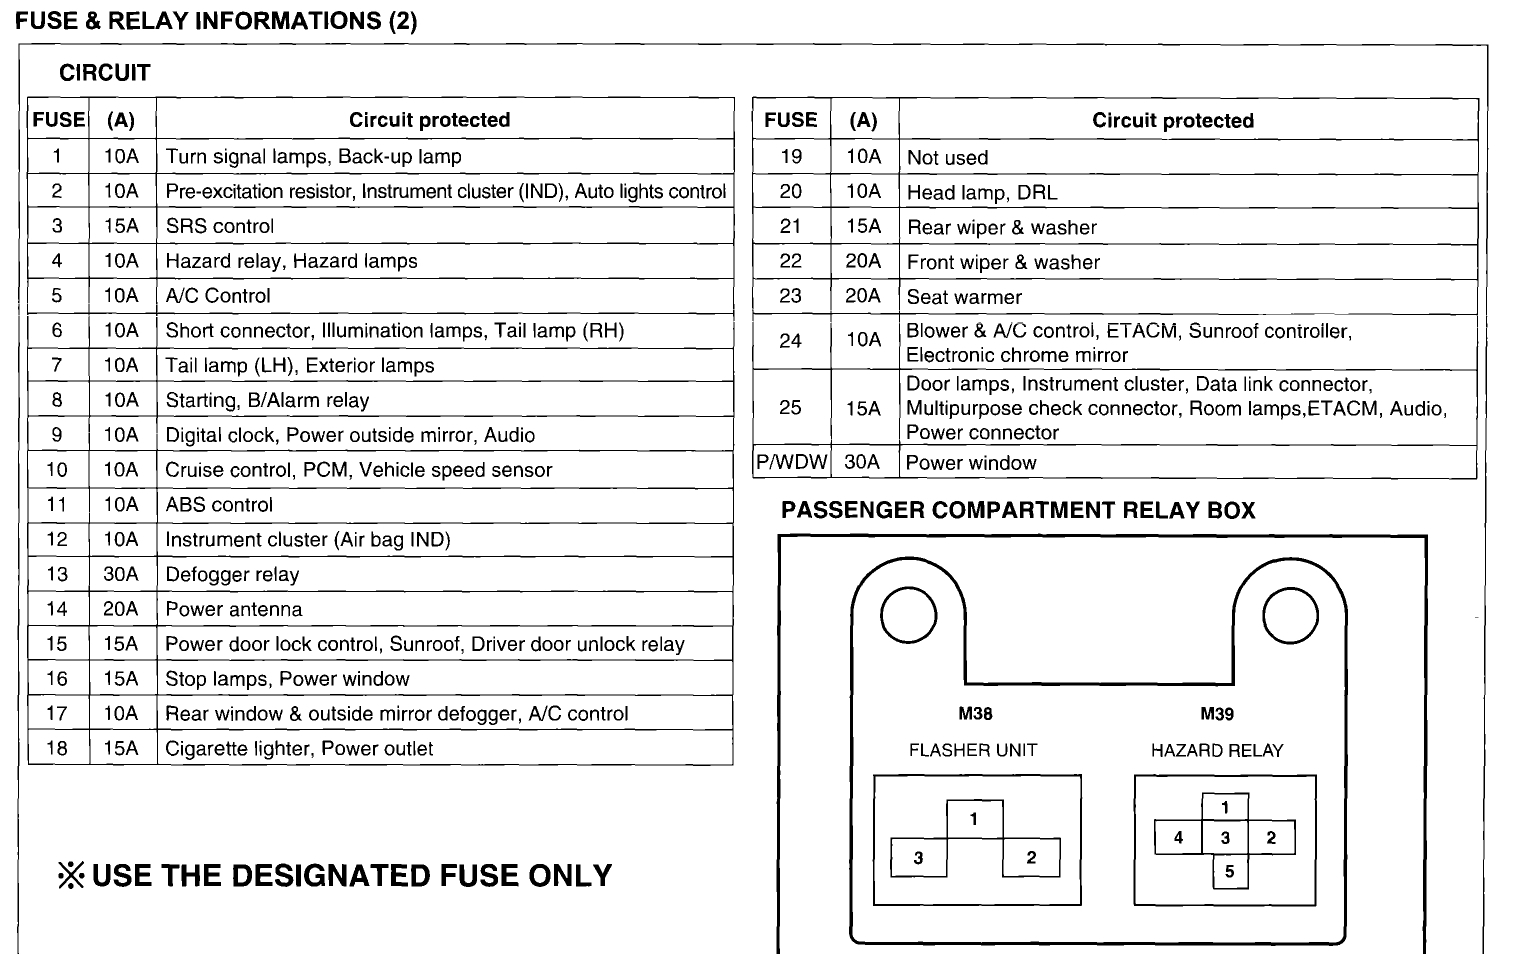 original signal light wiring diagram 2002 hyundai elantra 2006 hyundai hyundai elantra wiring diagram at reclaimingppi.co